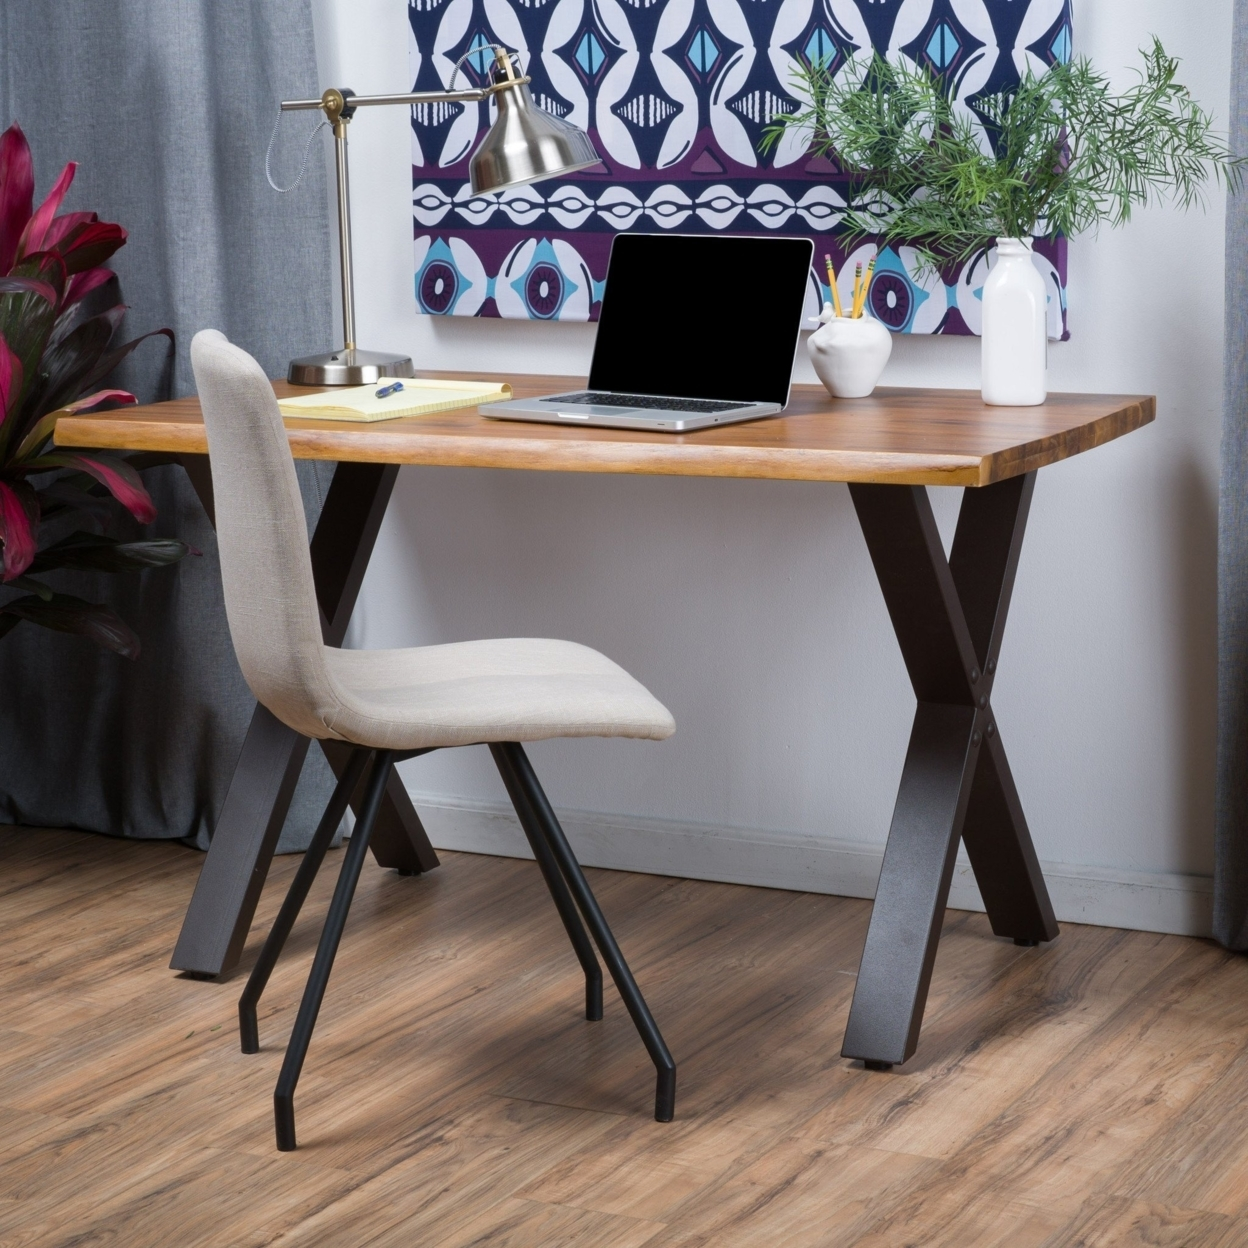 Denise Austin Home Fitzgerald Acacia Wood Computer Desk